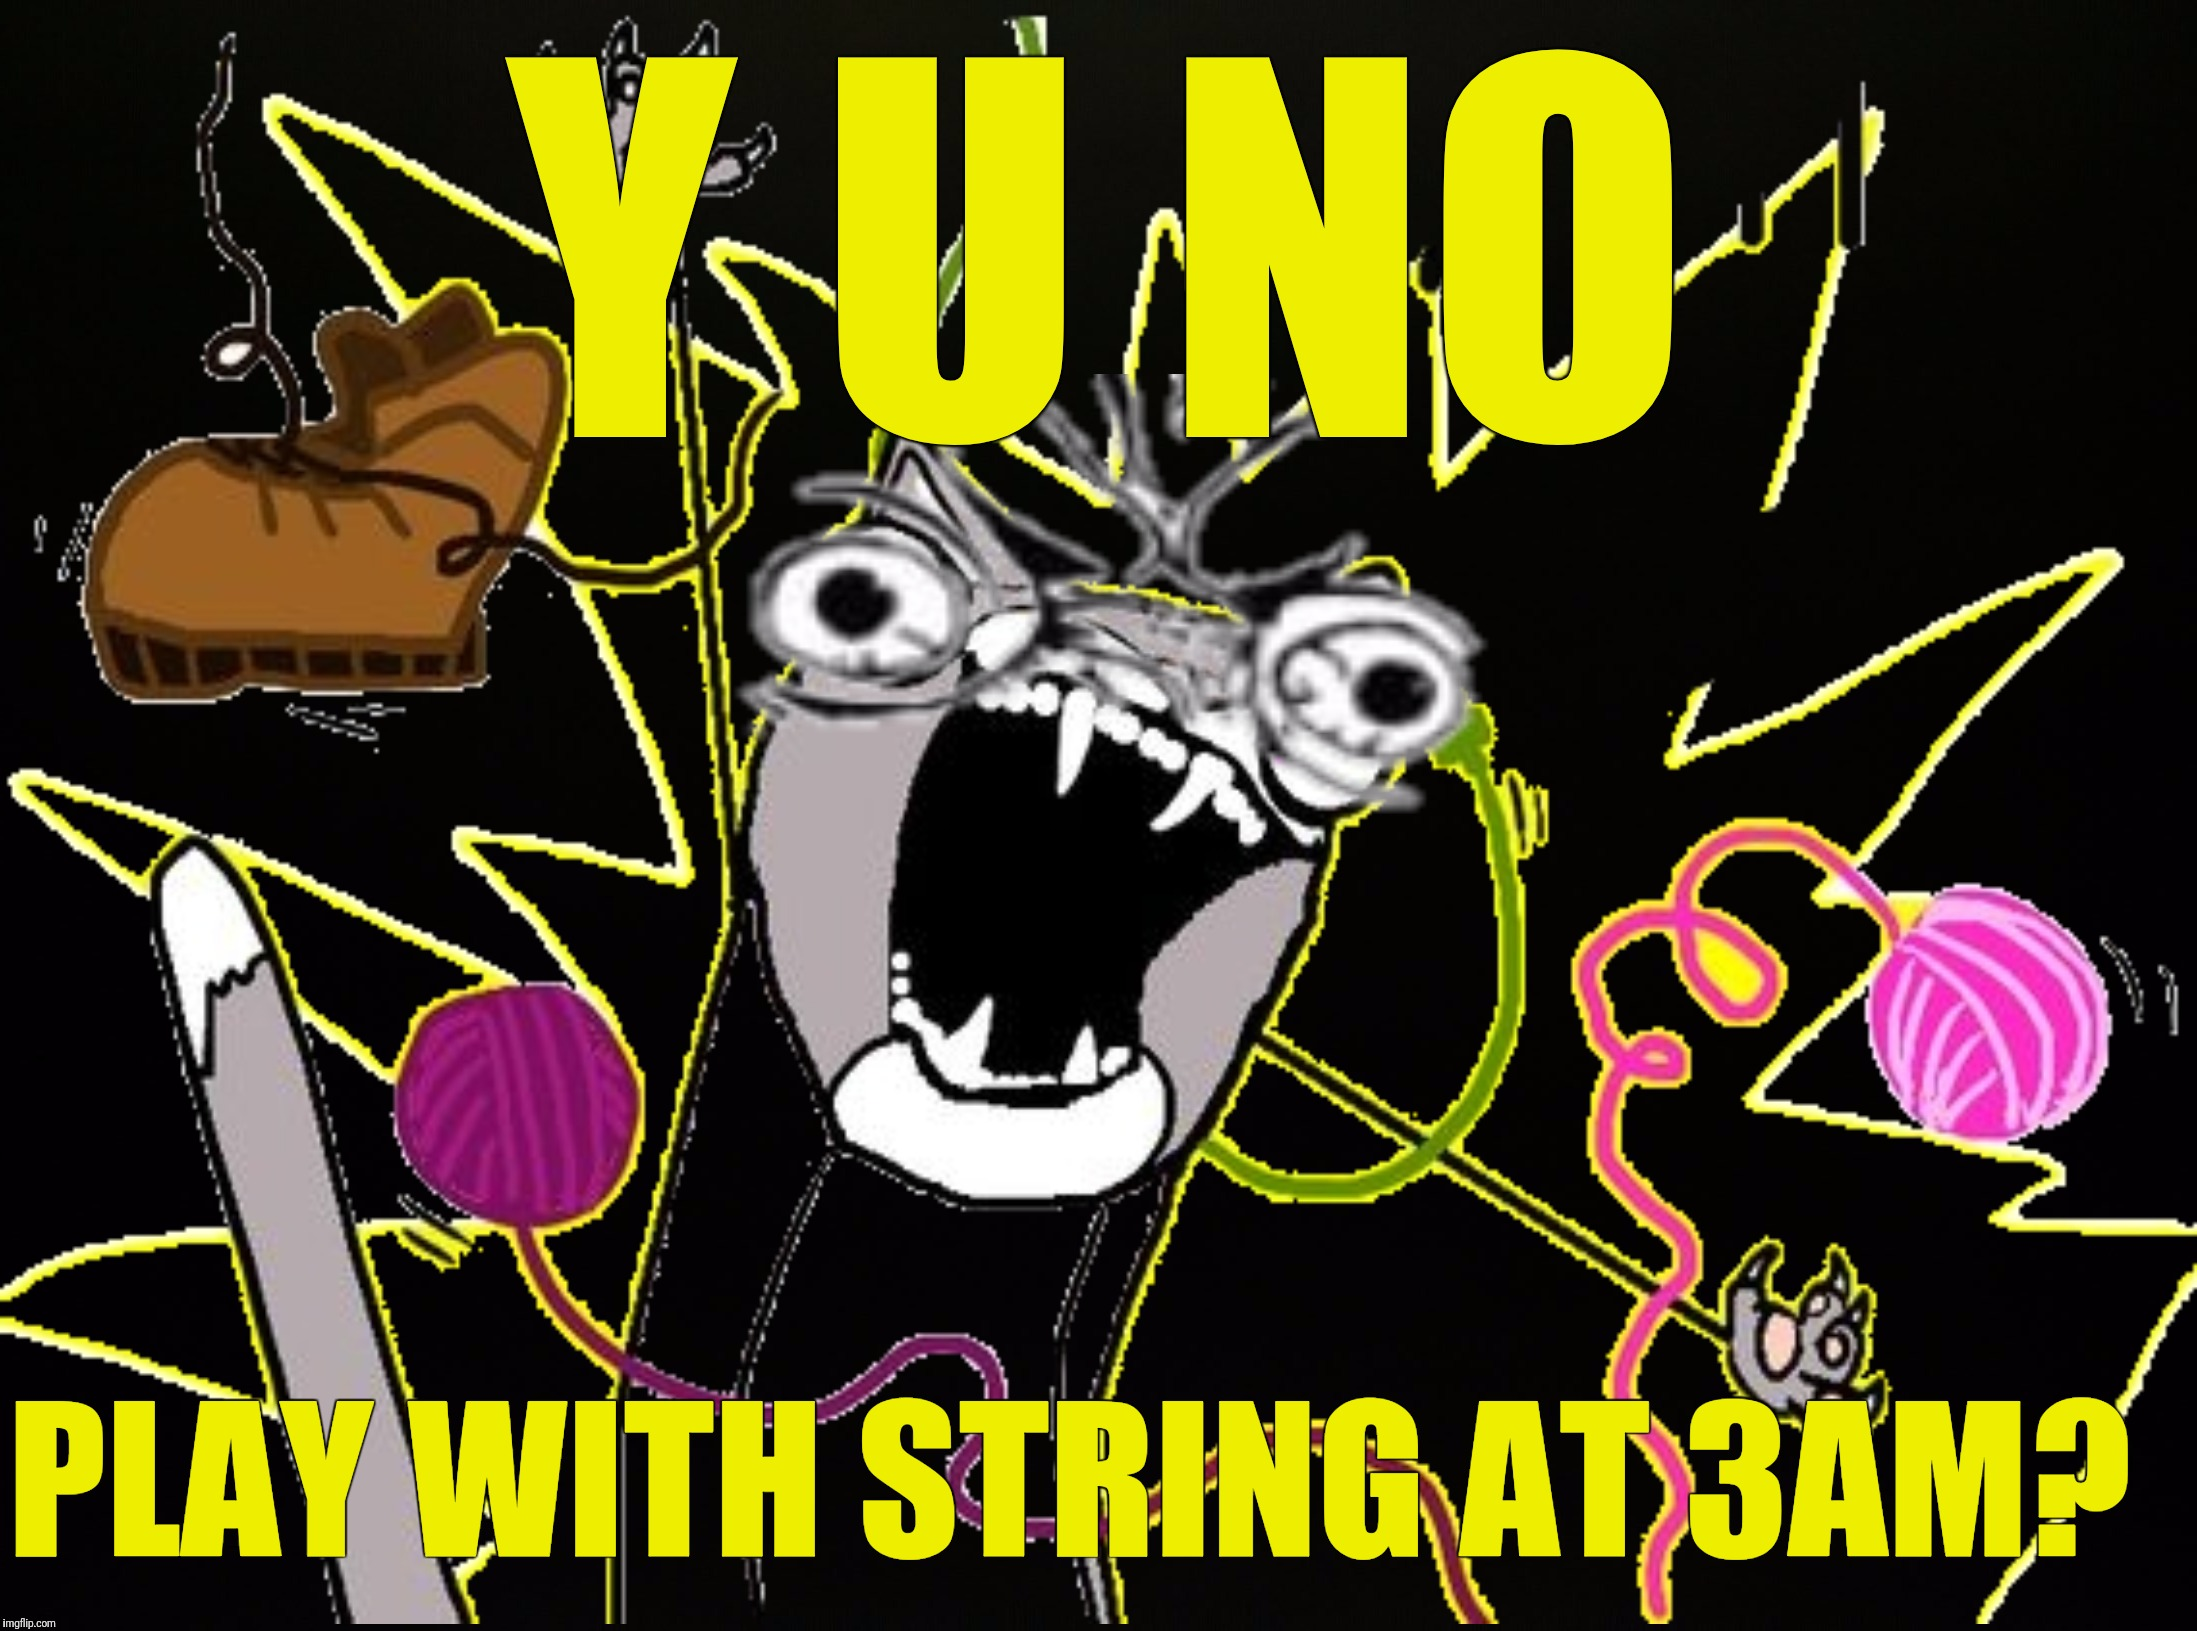 Y U NO PLAY WITH STRING AT 3AM? | made w/ Imgflip meme maker